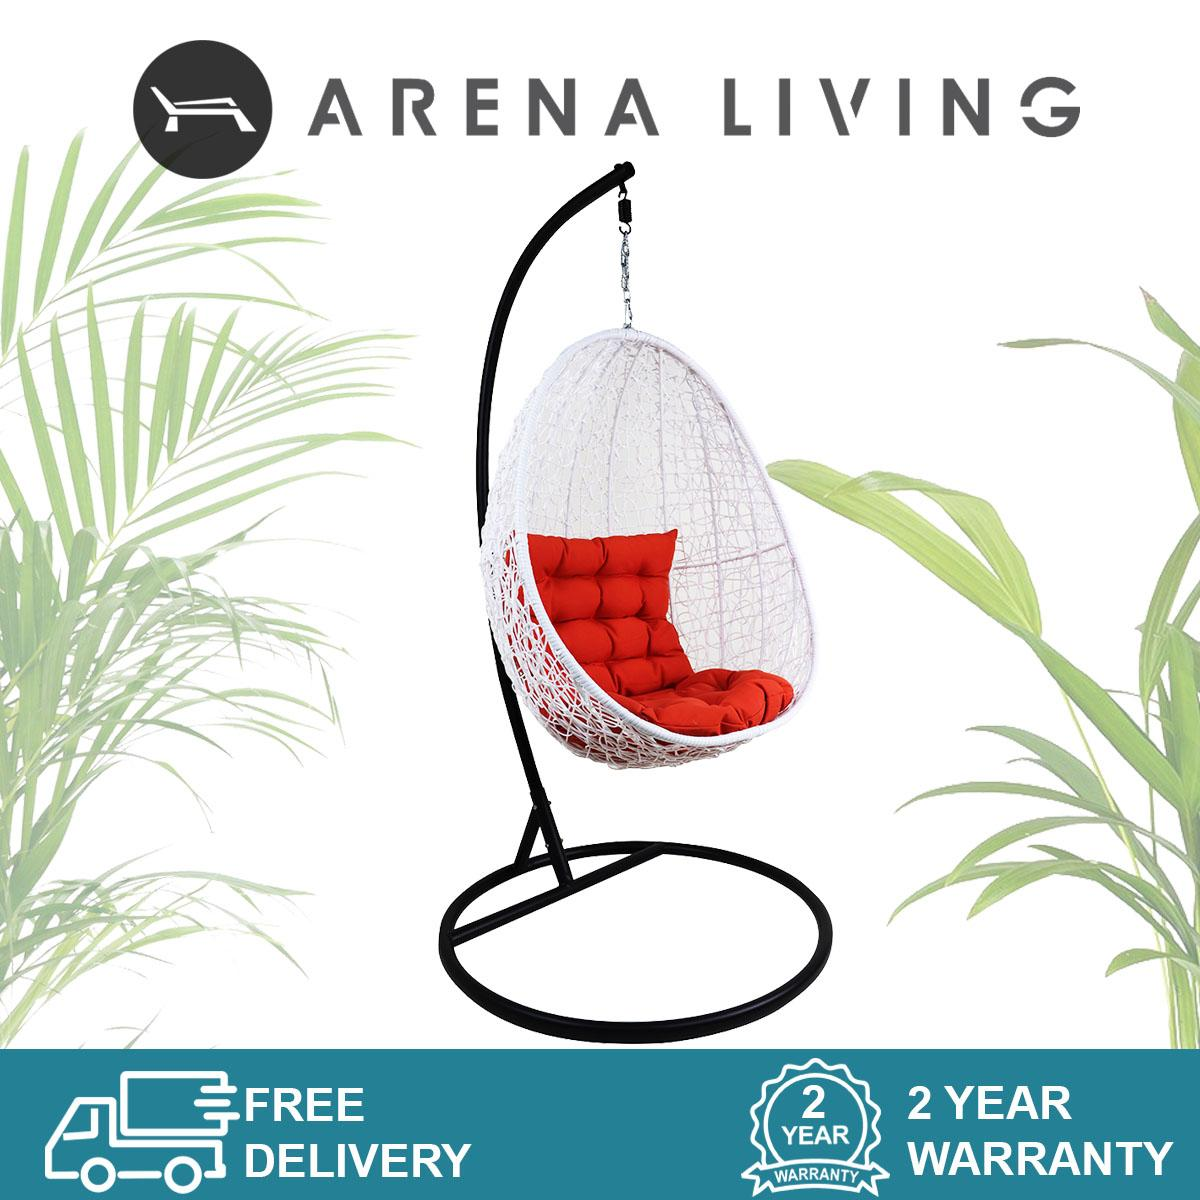 White Cocoon Swing Chair Orange Cushion, Outdoor Furniture by Arena Living